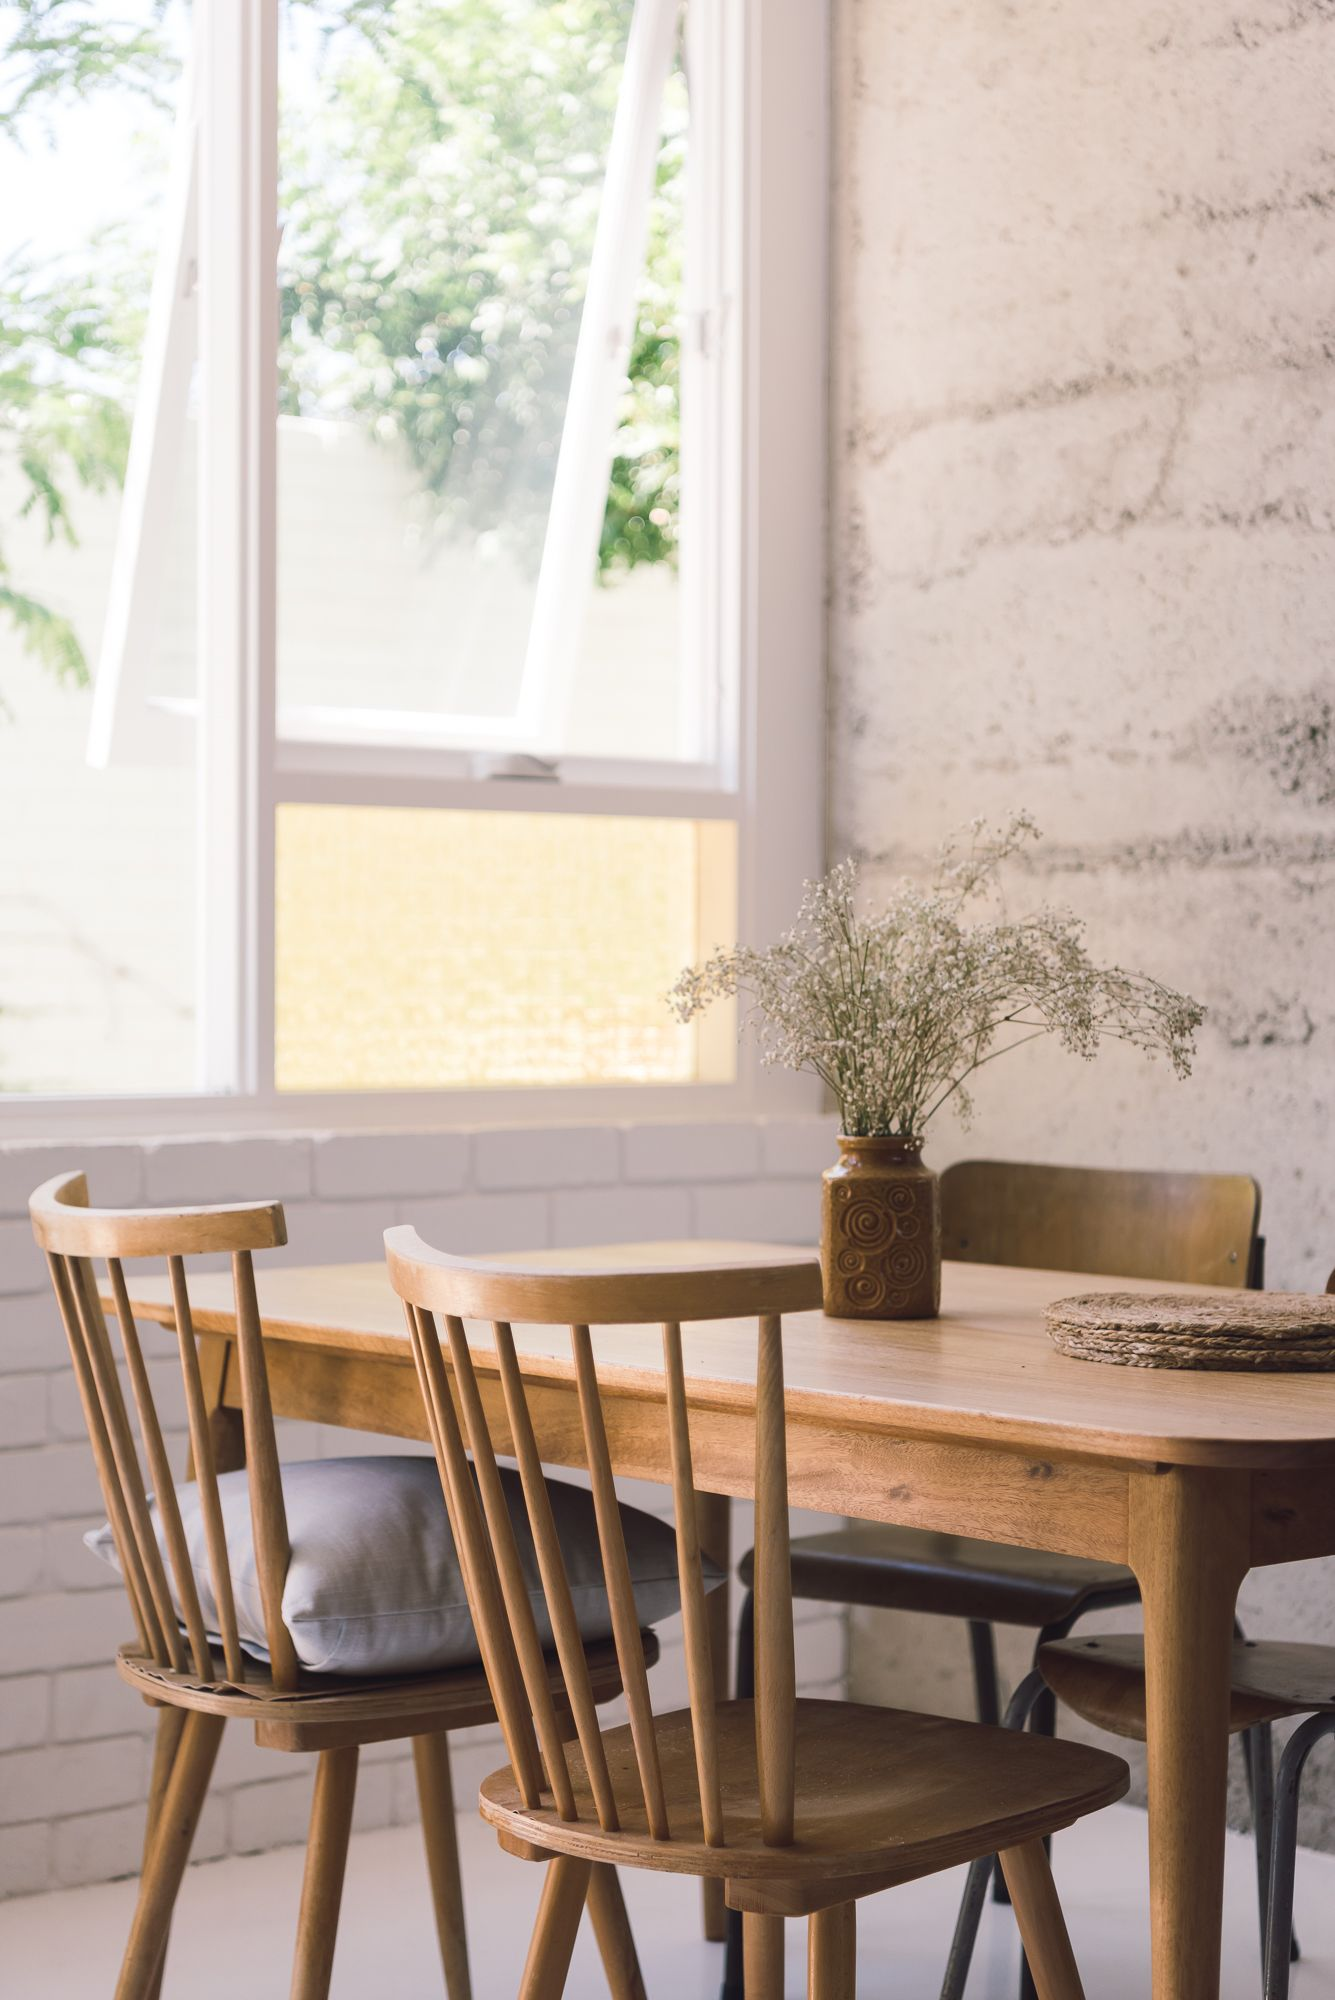 Swell Tanya Mckenna Perth Wa Dining Rooms Cozy House Eco Interior Design Ideas Philsoteloinfo